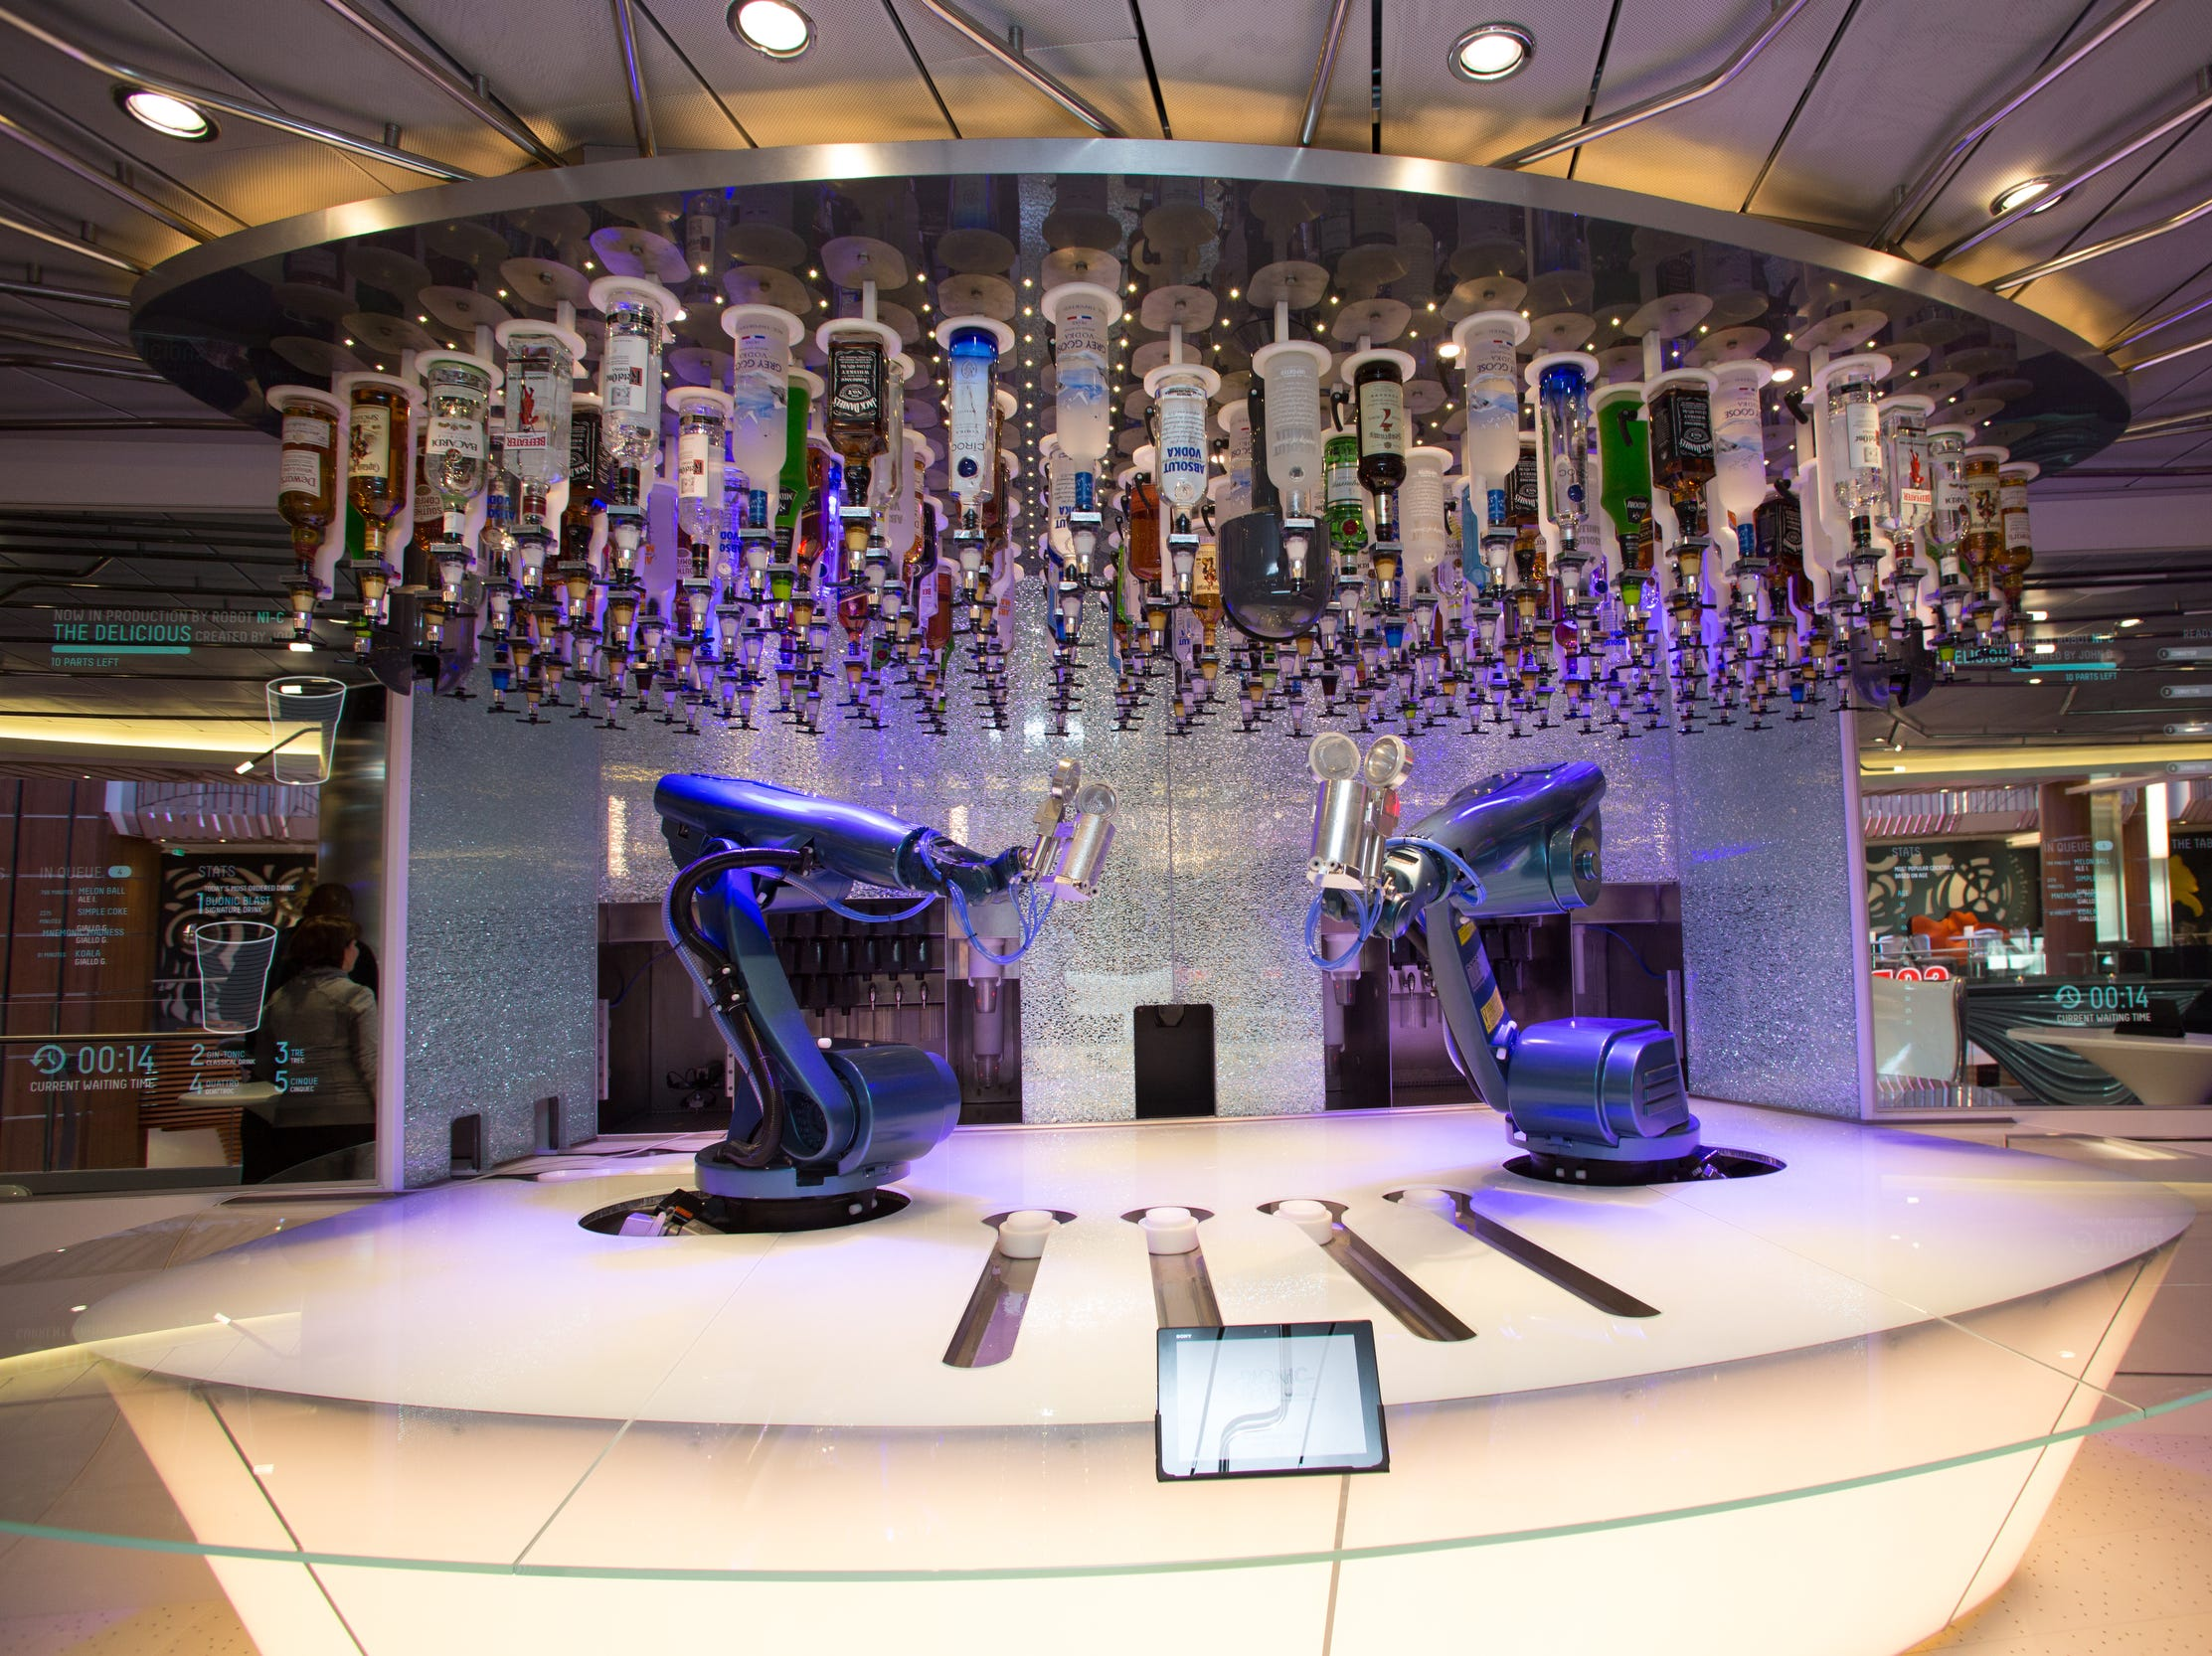 Passengers use an iPad to place orders for drinks at the Bionic Bar on Royal Caribbean's Quantum of the Seas. The robot bartenders do the rest.